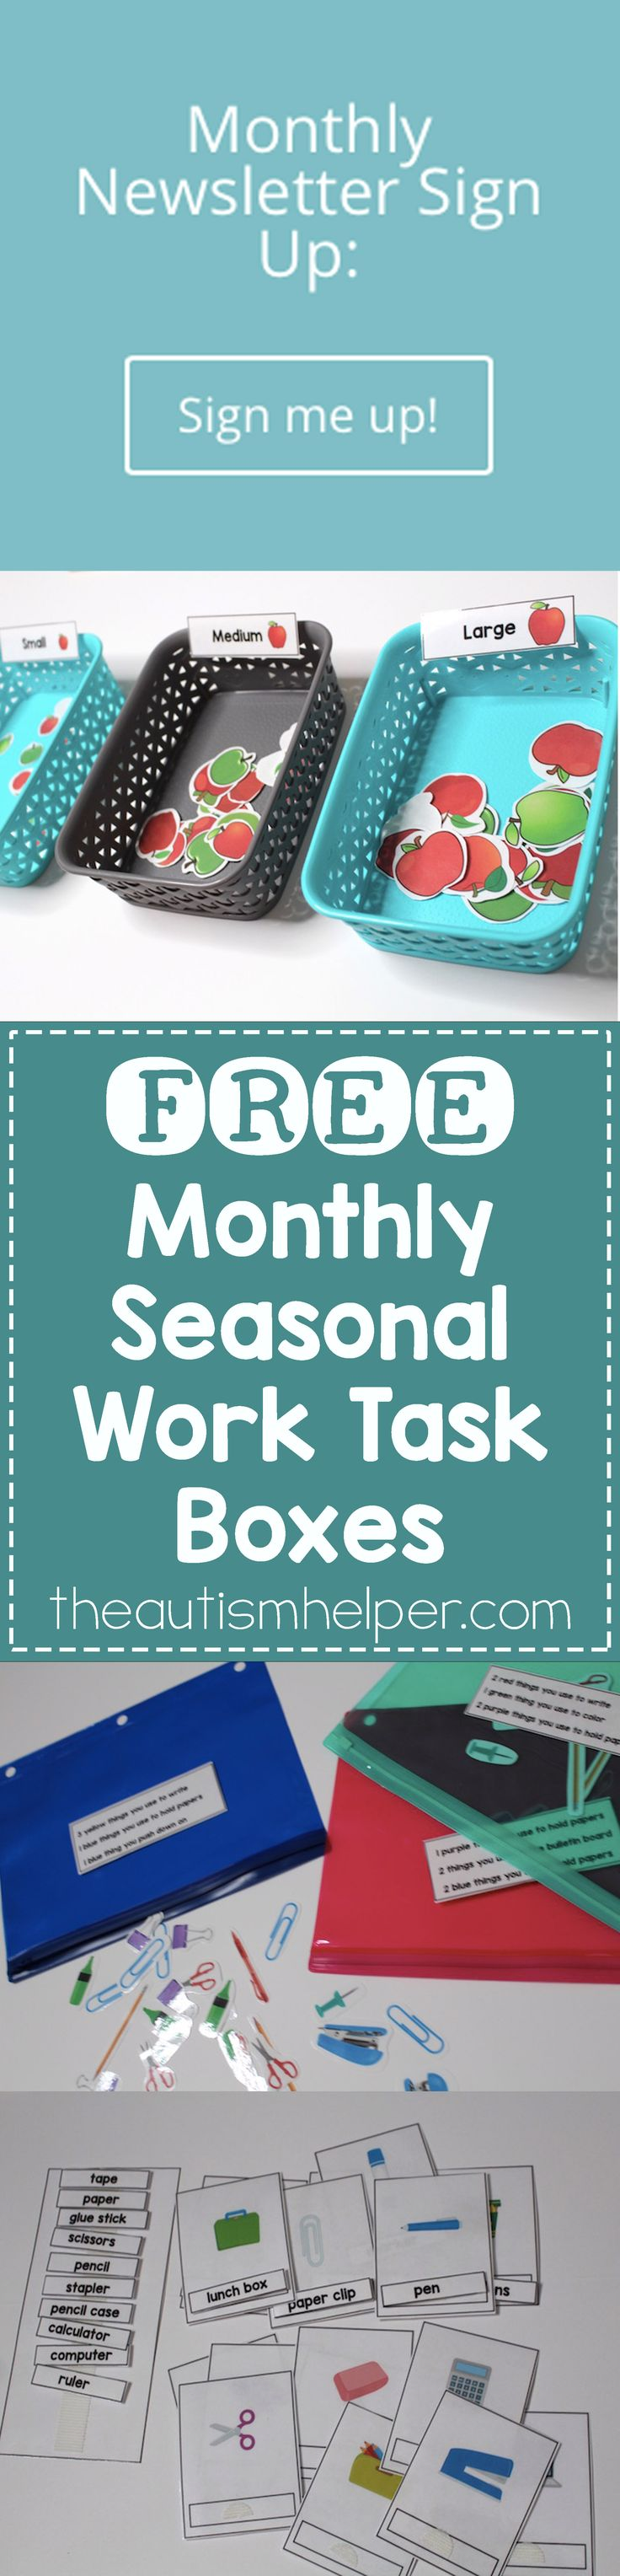 I've got a SUPER exciting new promo coming at ya! This school year we will be giving 3 FREE seasonal work tasks each month. You can grab these work tasks only through the newsletter so be sure to sign up!! From theautismhelper.com #theautismhelper